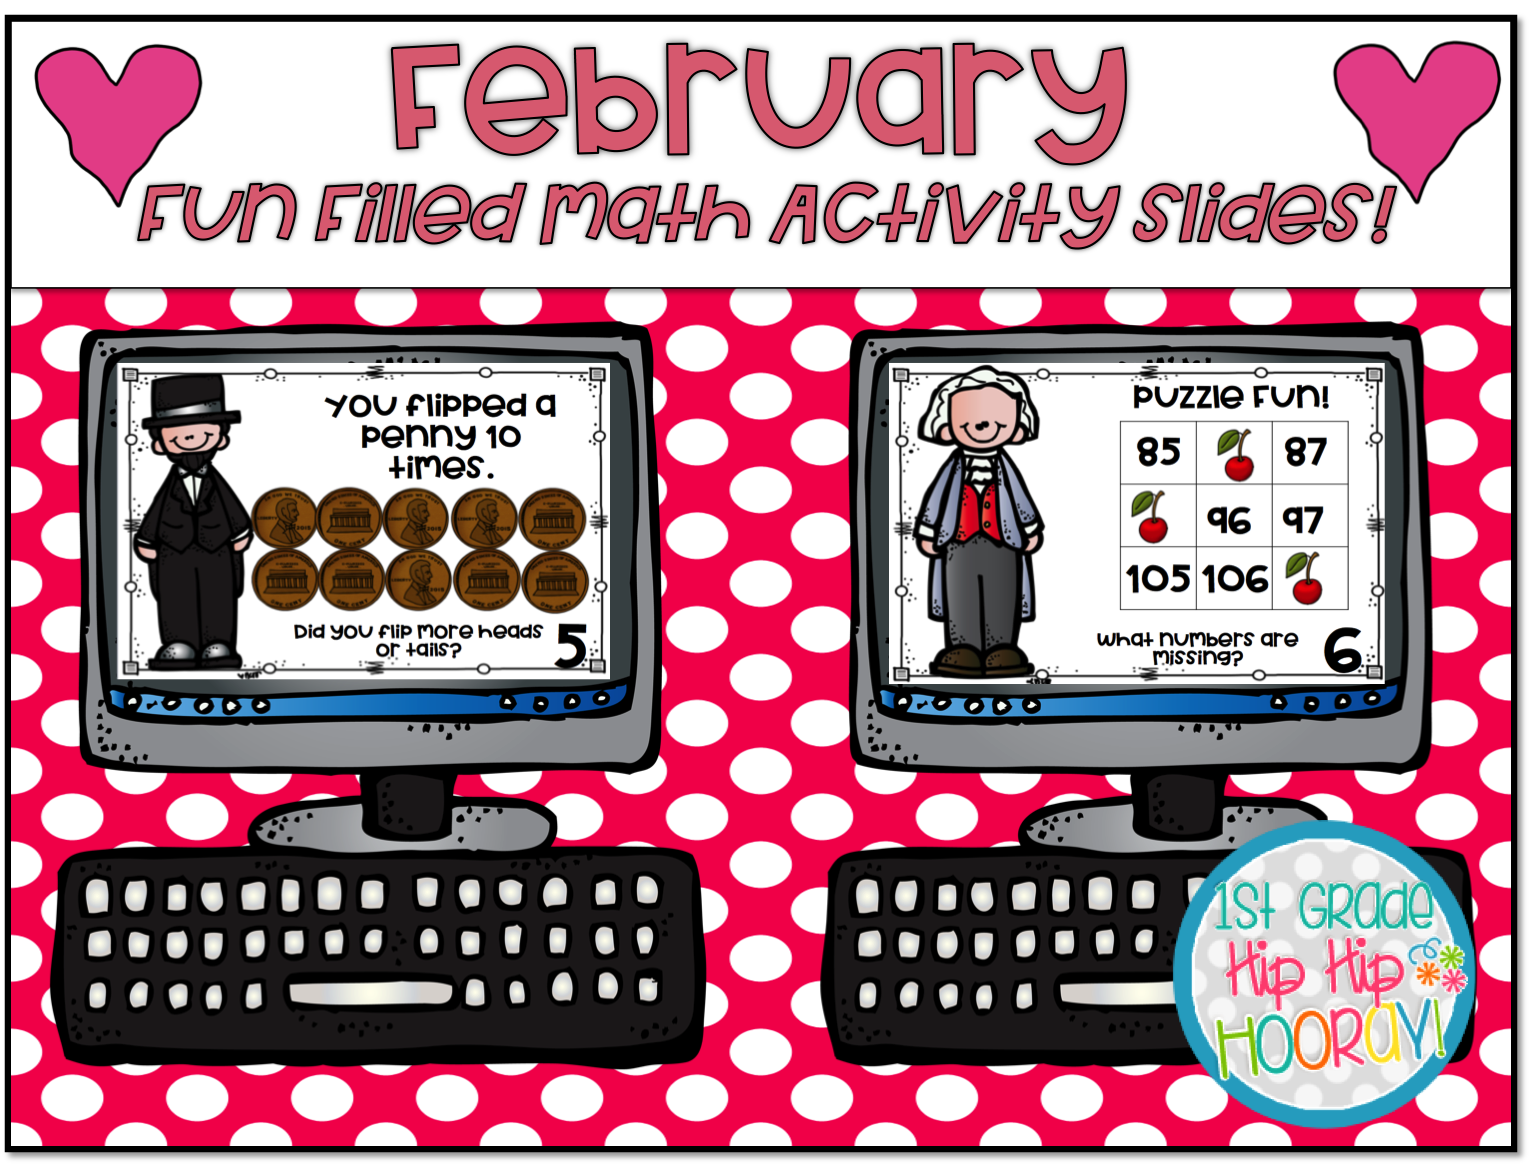 1st Grade Hip Hip Hooray February Fun Filled Math